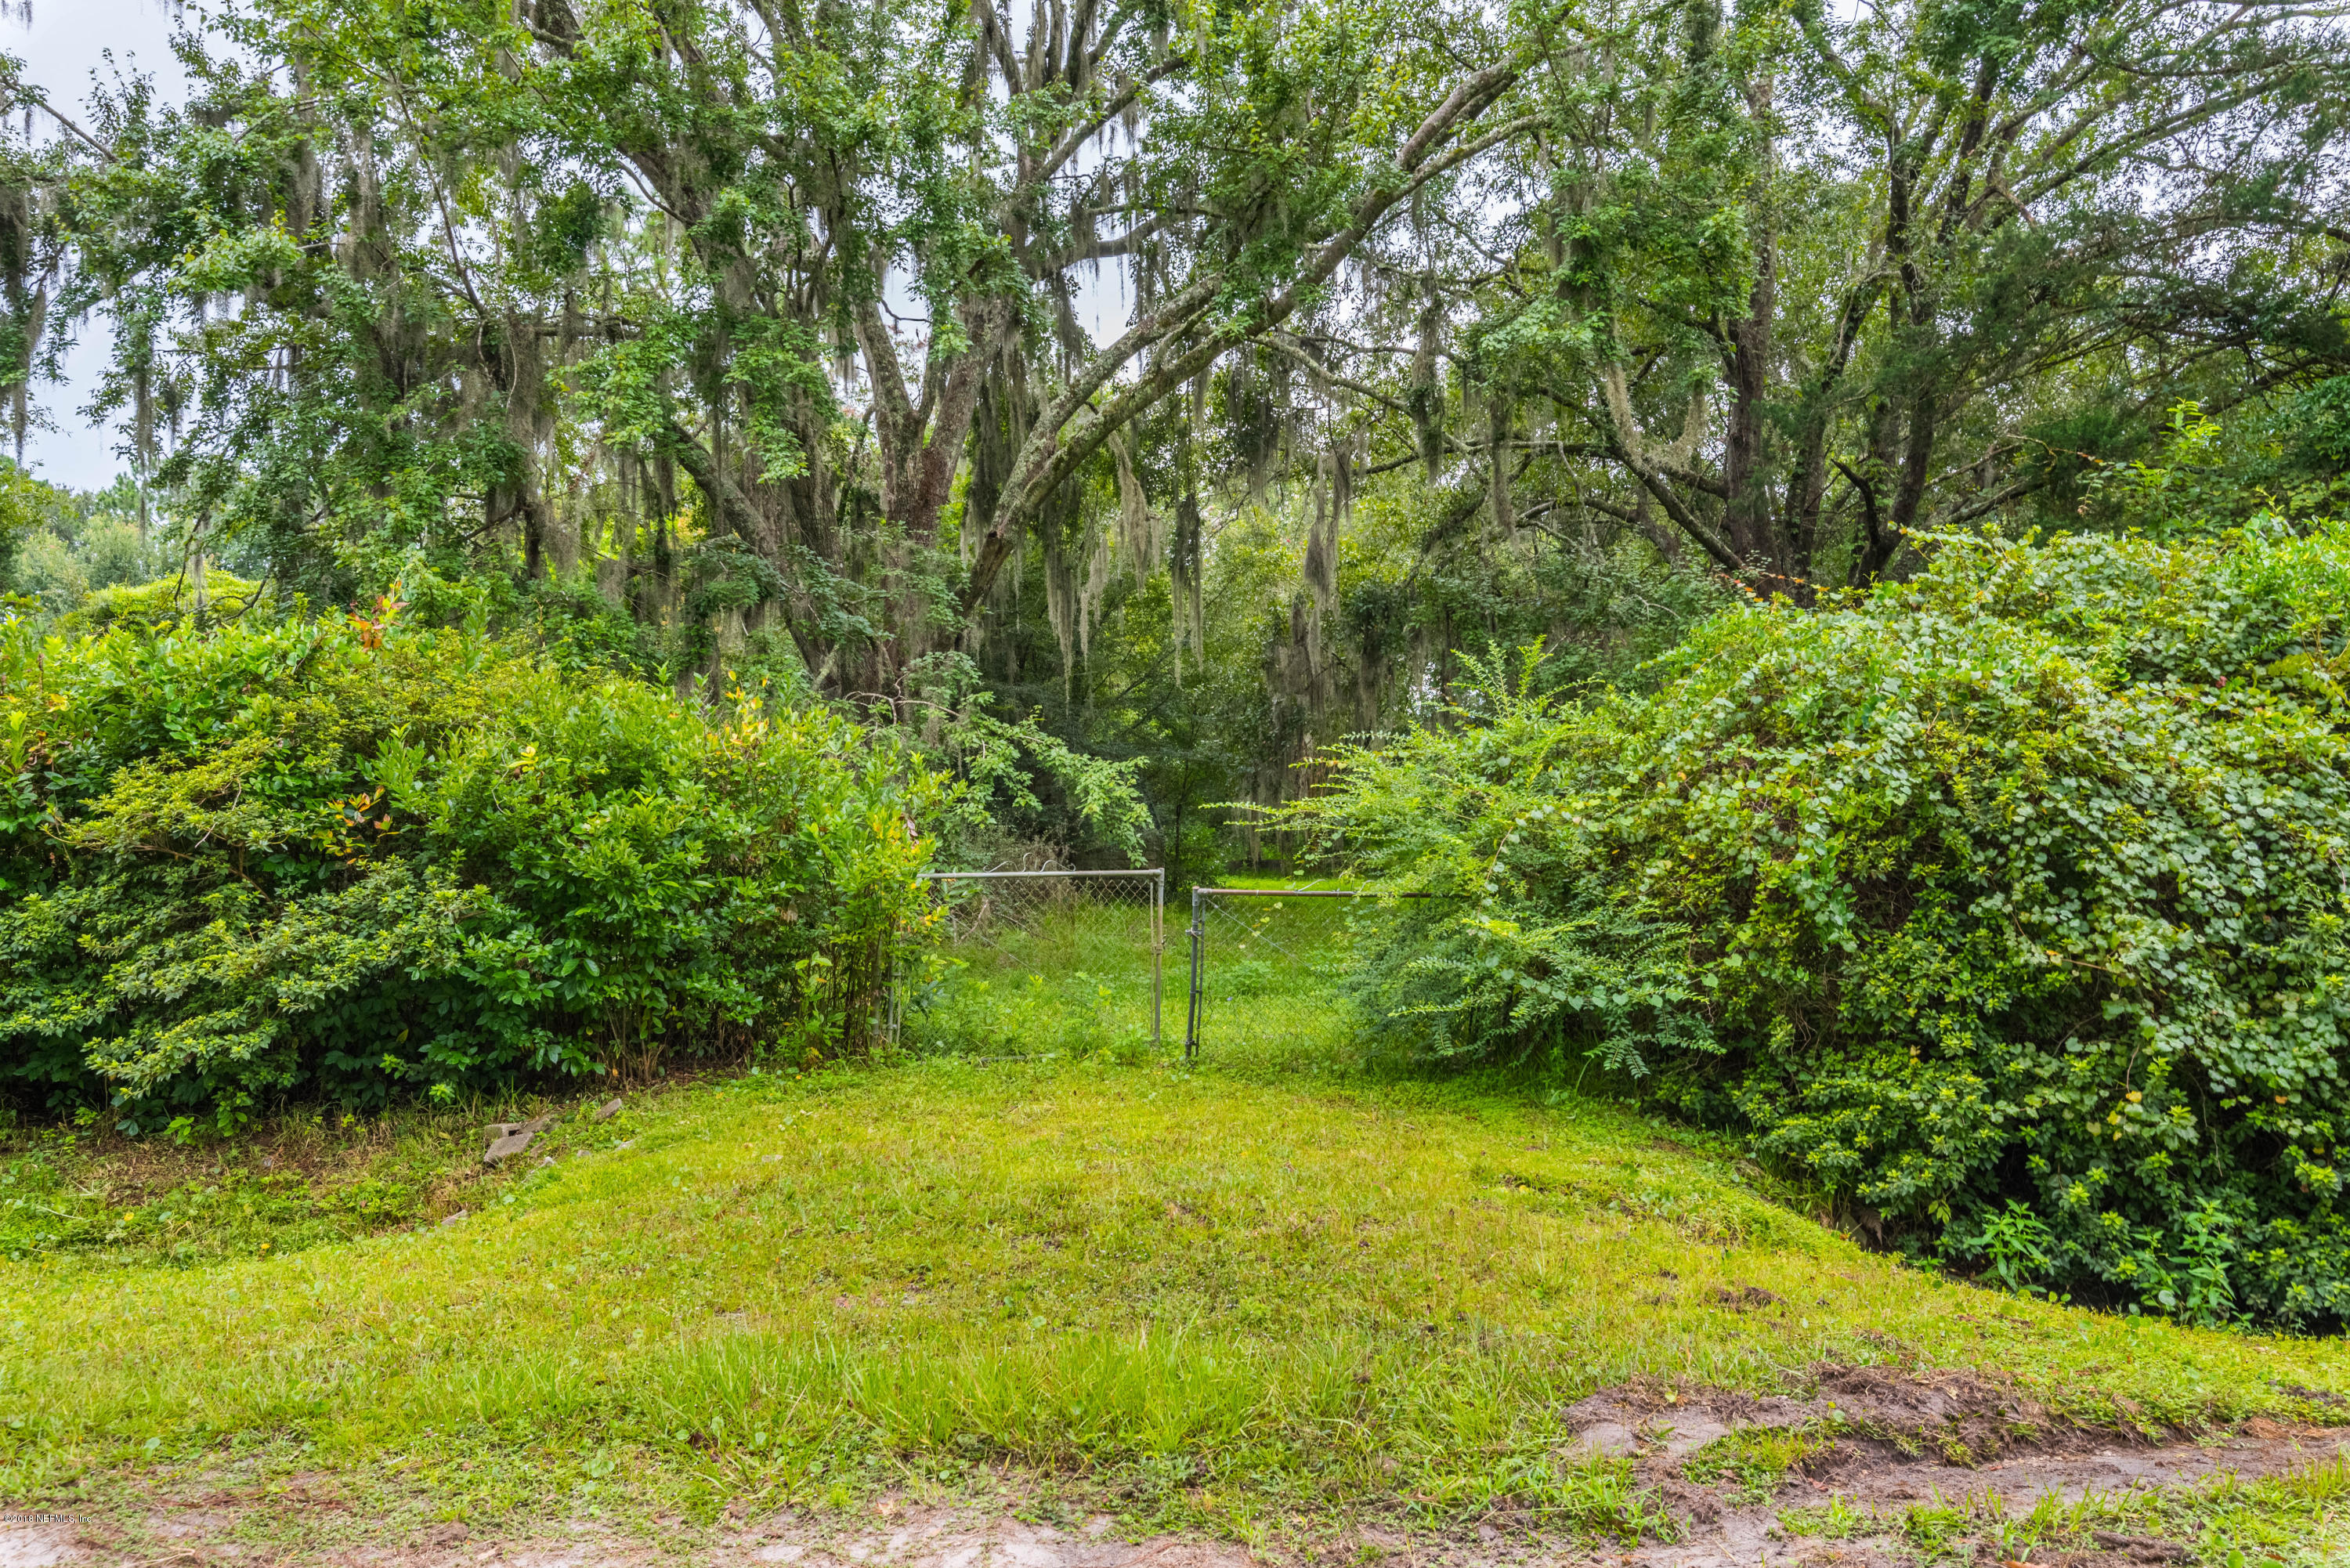 0 JOES, JACKSONVILLE, FLORIDA 32221, ,Vacant land,For sale,JOES,957512